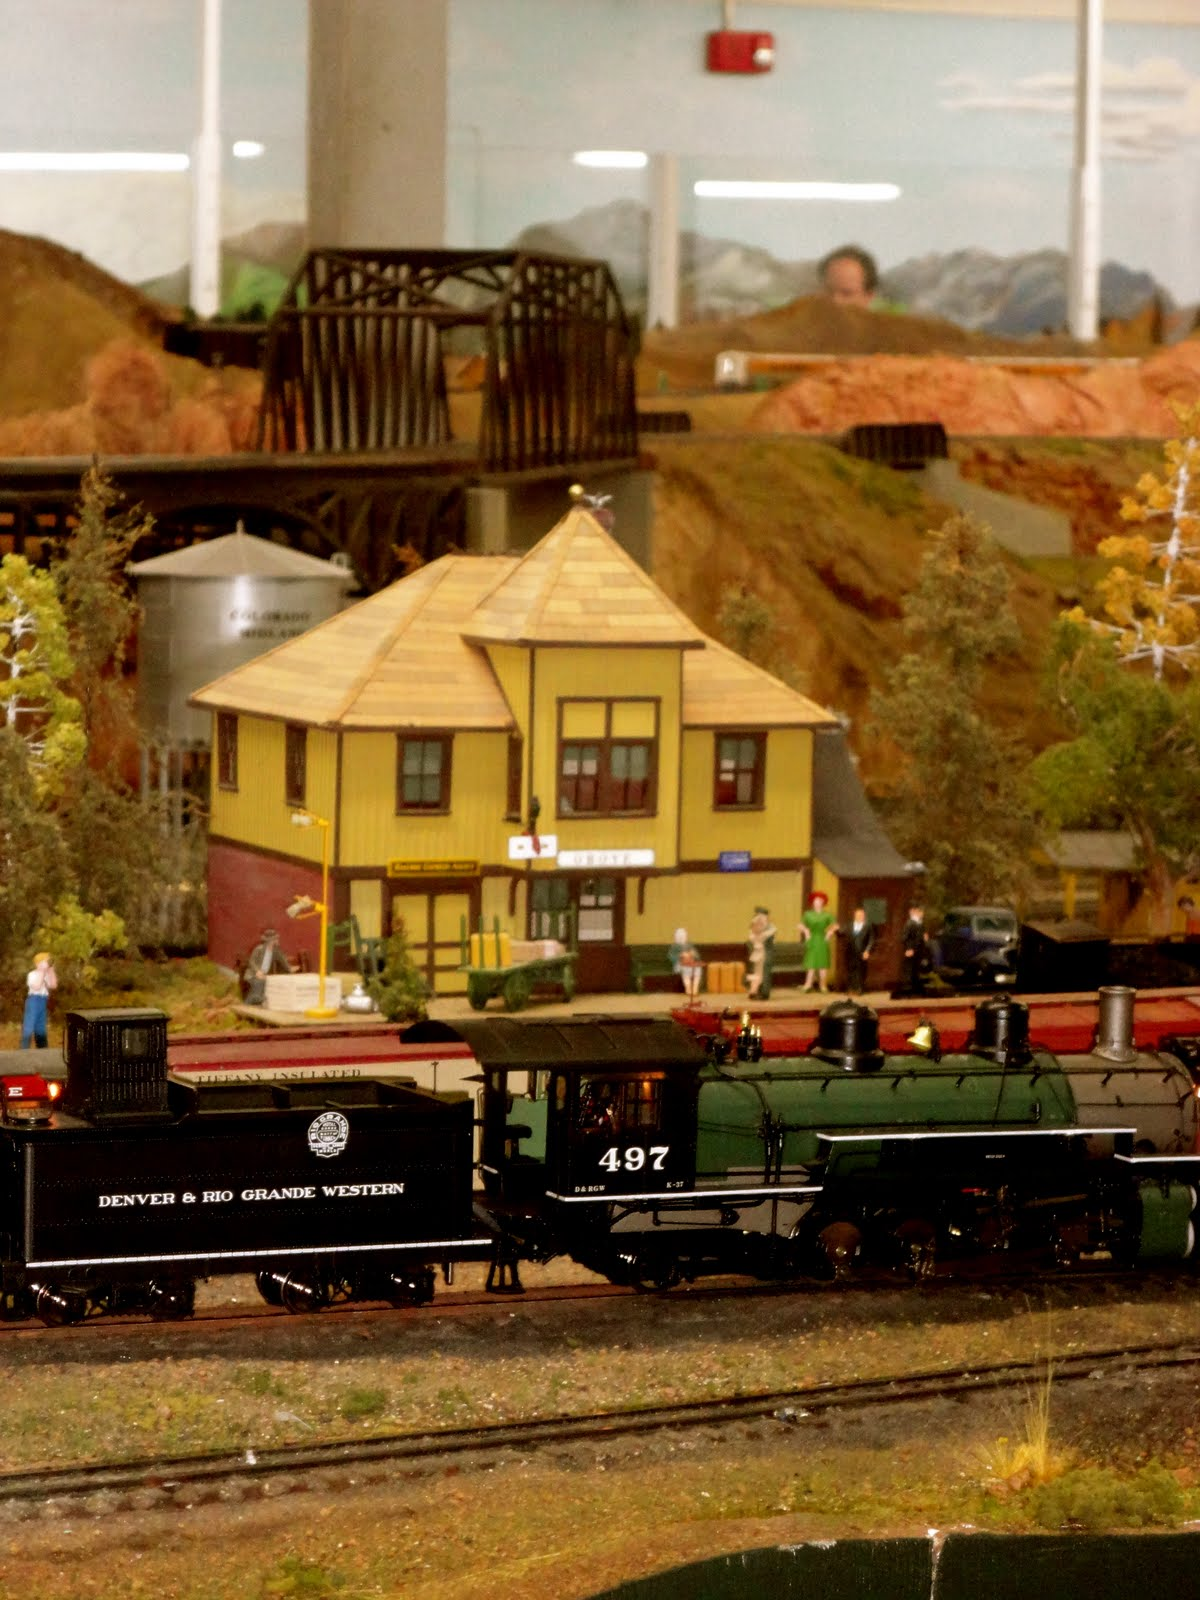 blake v midland rail co Midland daily news obituaries and death notices for midland michigan area explore life stories, offer condolences & send flowers.